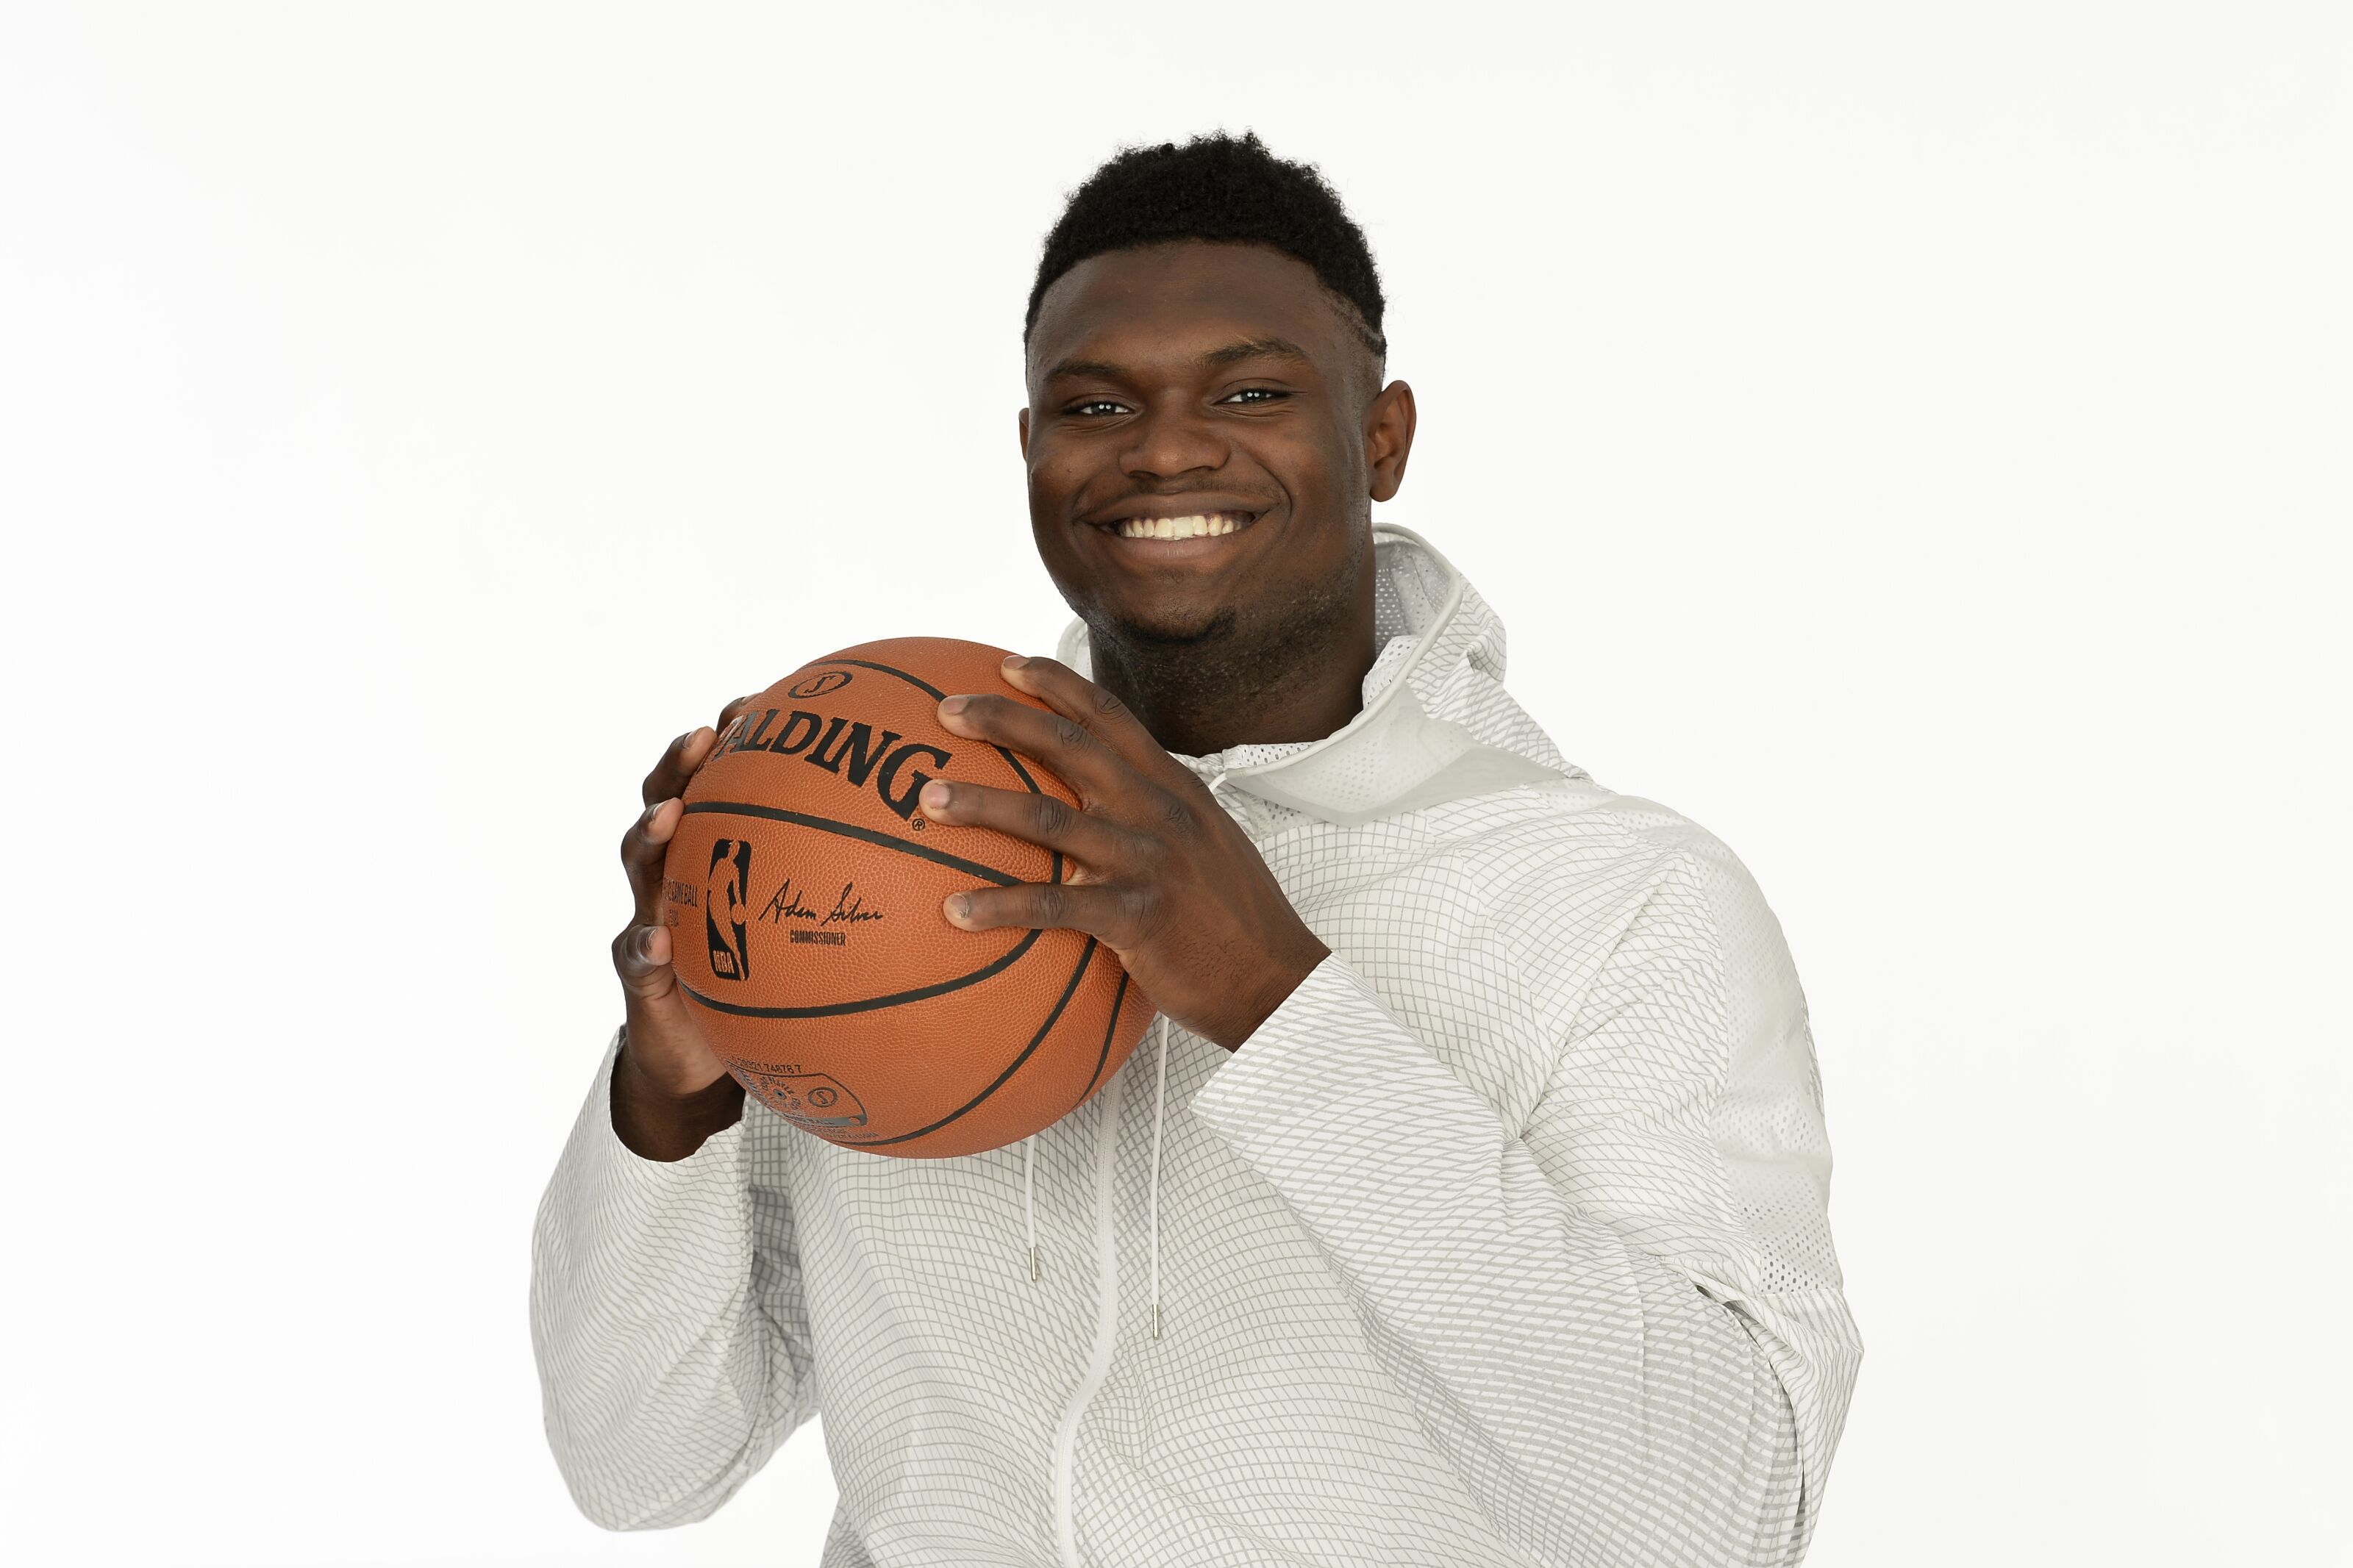 Prospect preview: How Zion Williamson entry to NBA affects OKC Thunder